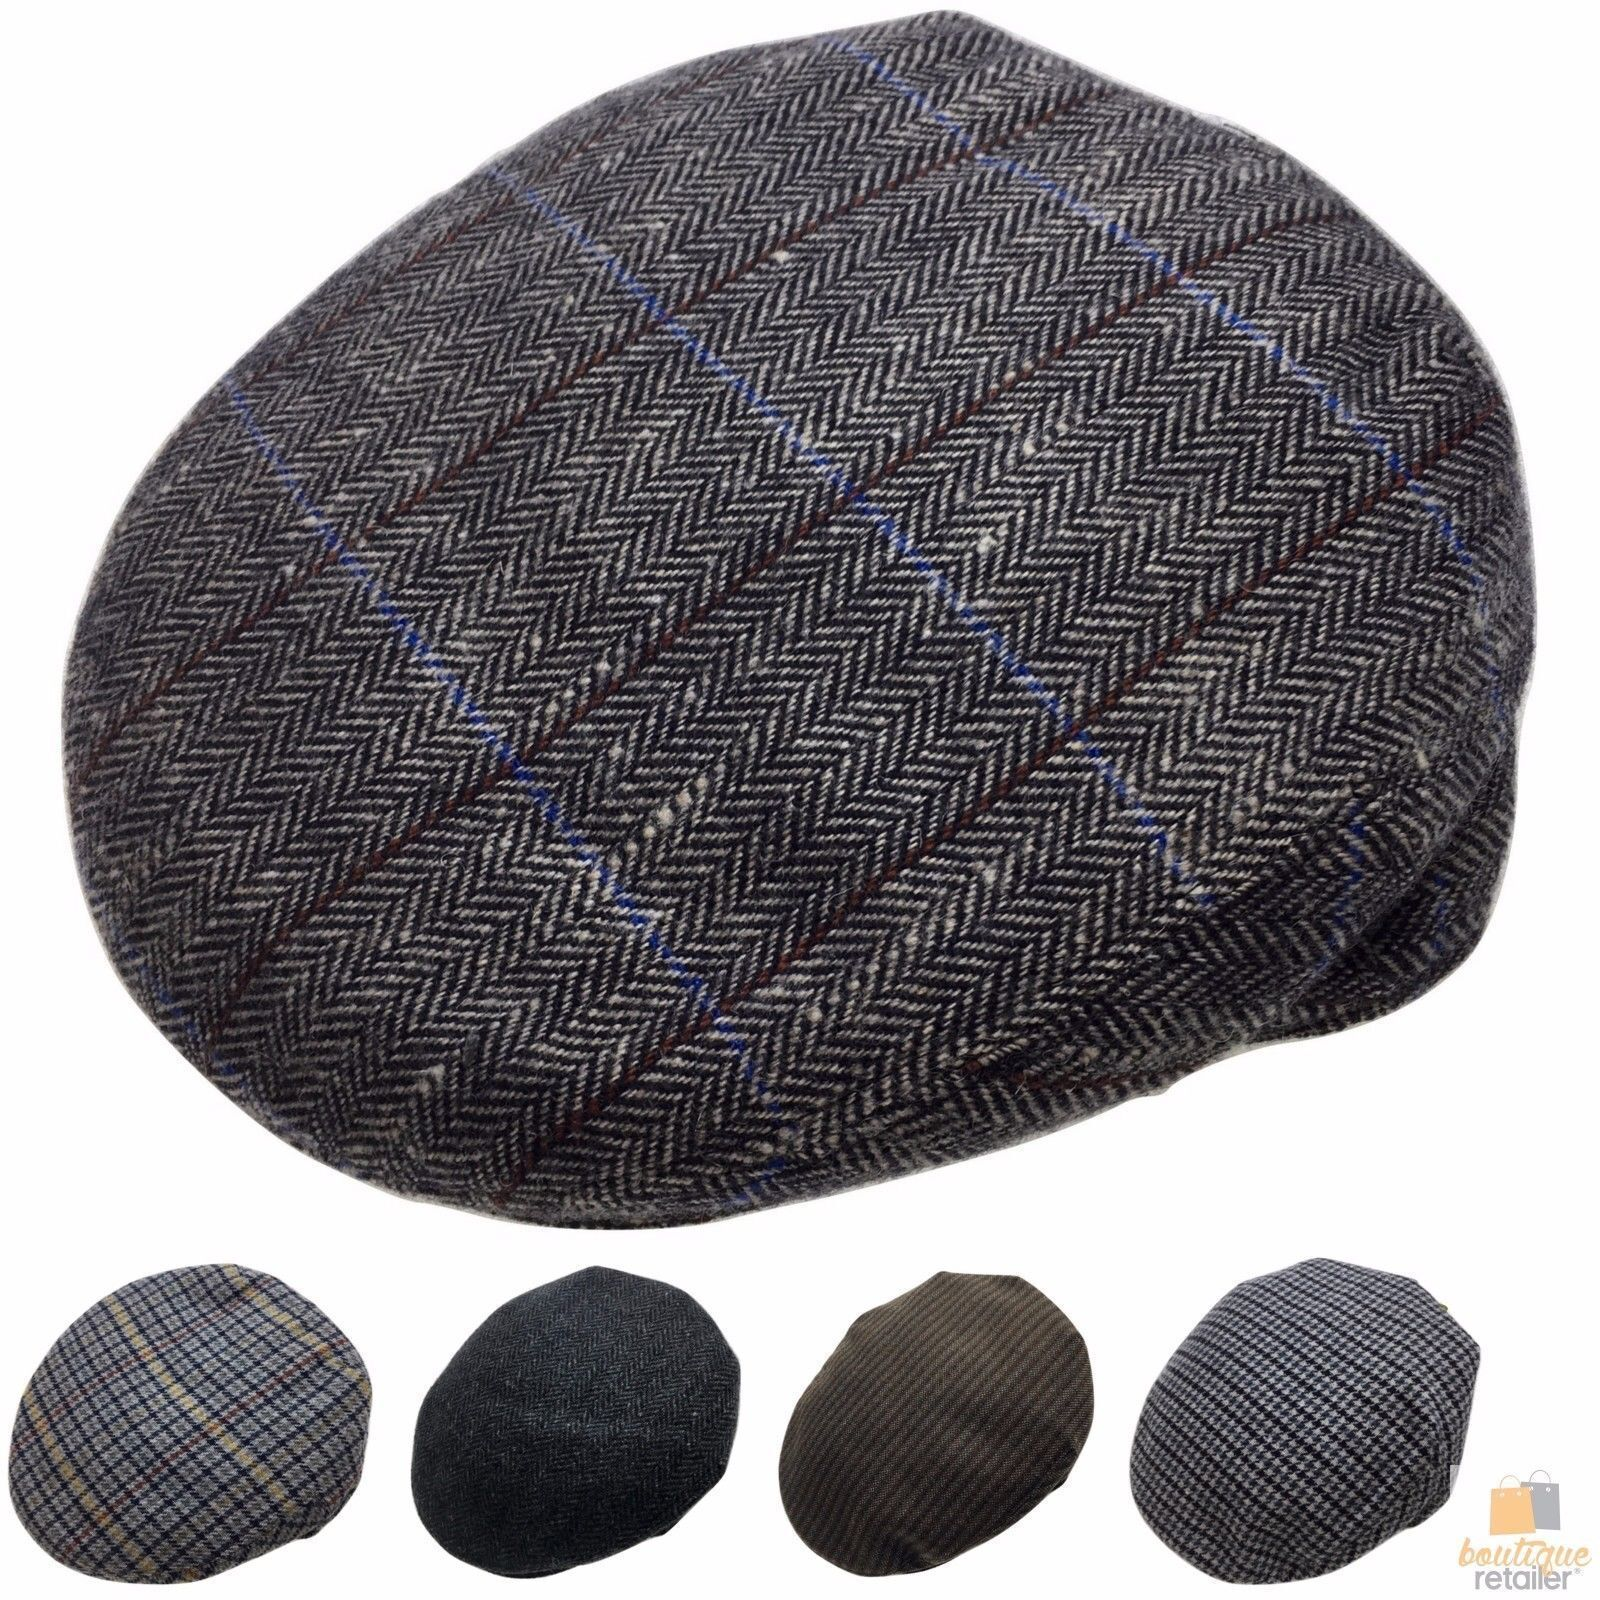 h m s Remaining. STRATFORD English Tweed Country Flat Cap Mens Driving ... 7d6fa9d91c96